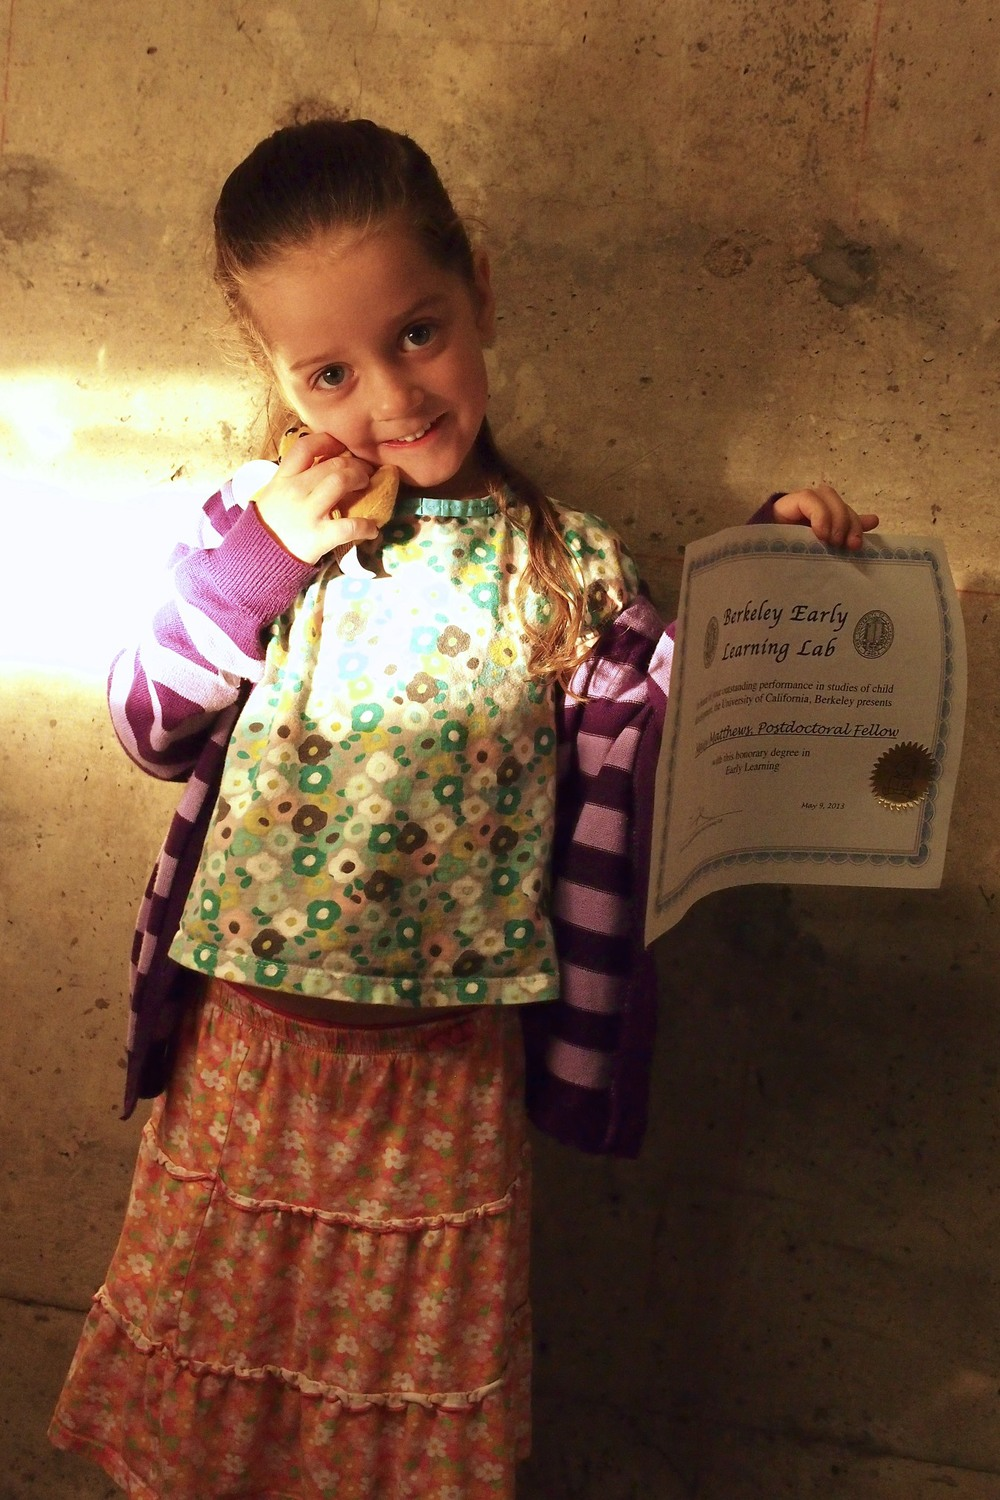 Maisy shows off her doggy toy and her diploma in the parking garage as her sister flashes the high beams from the driver's seat of our car.